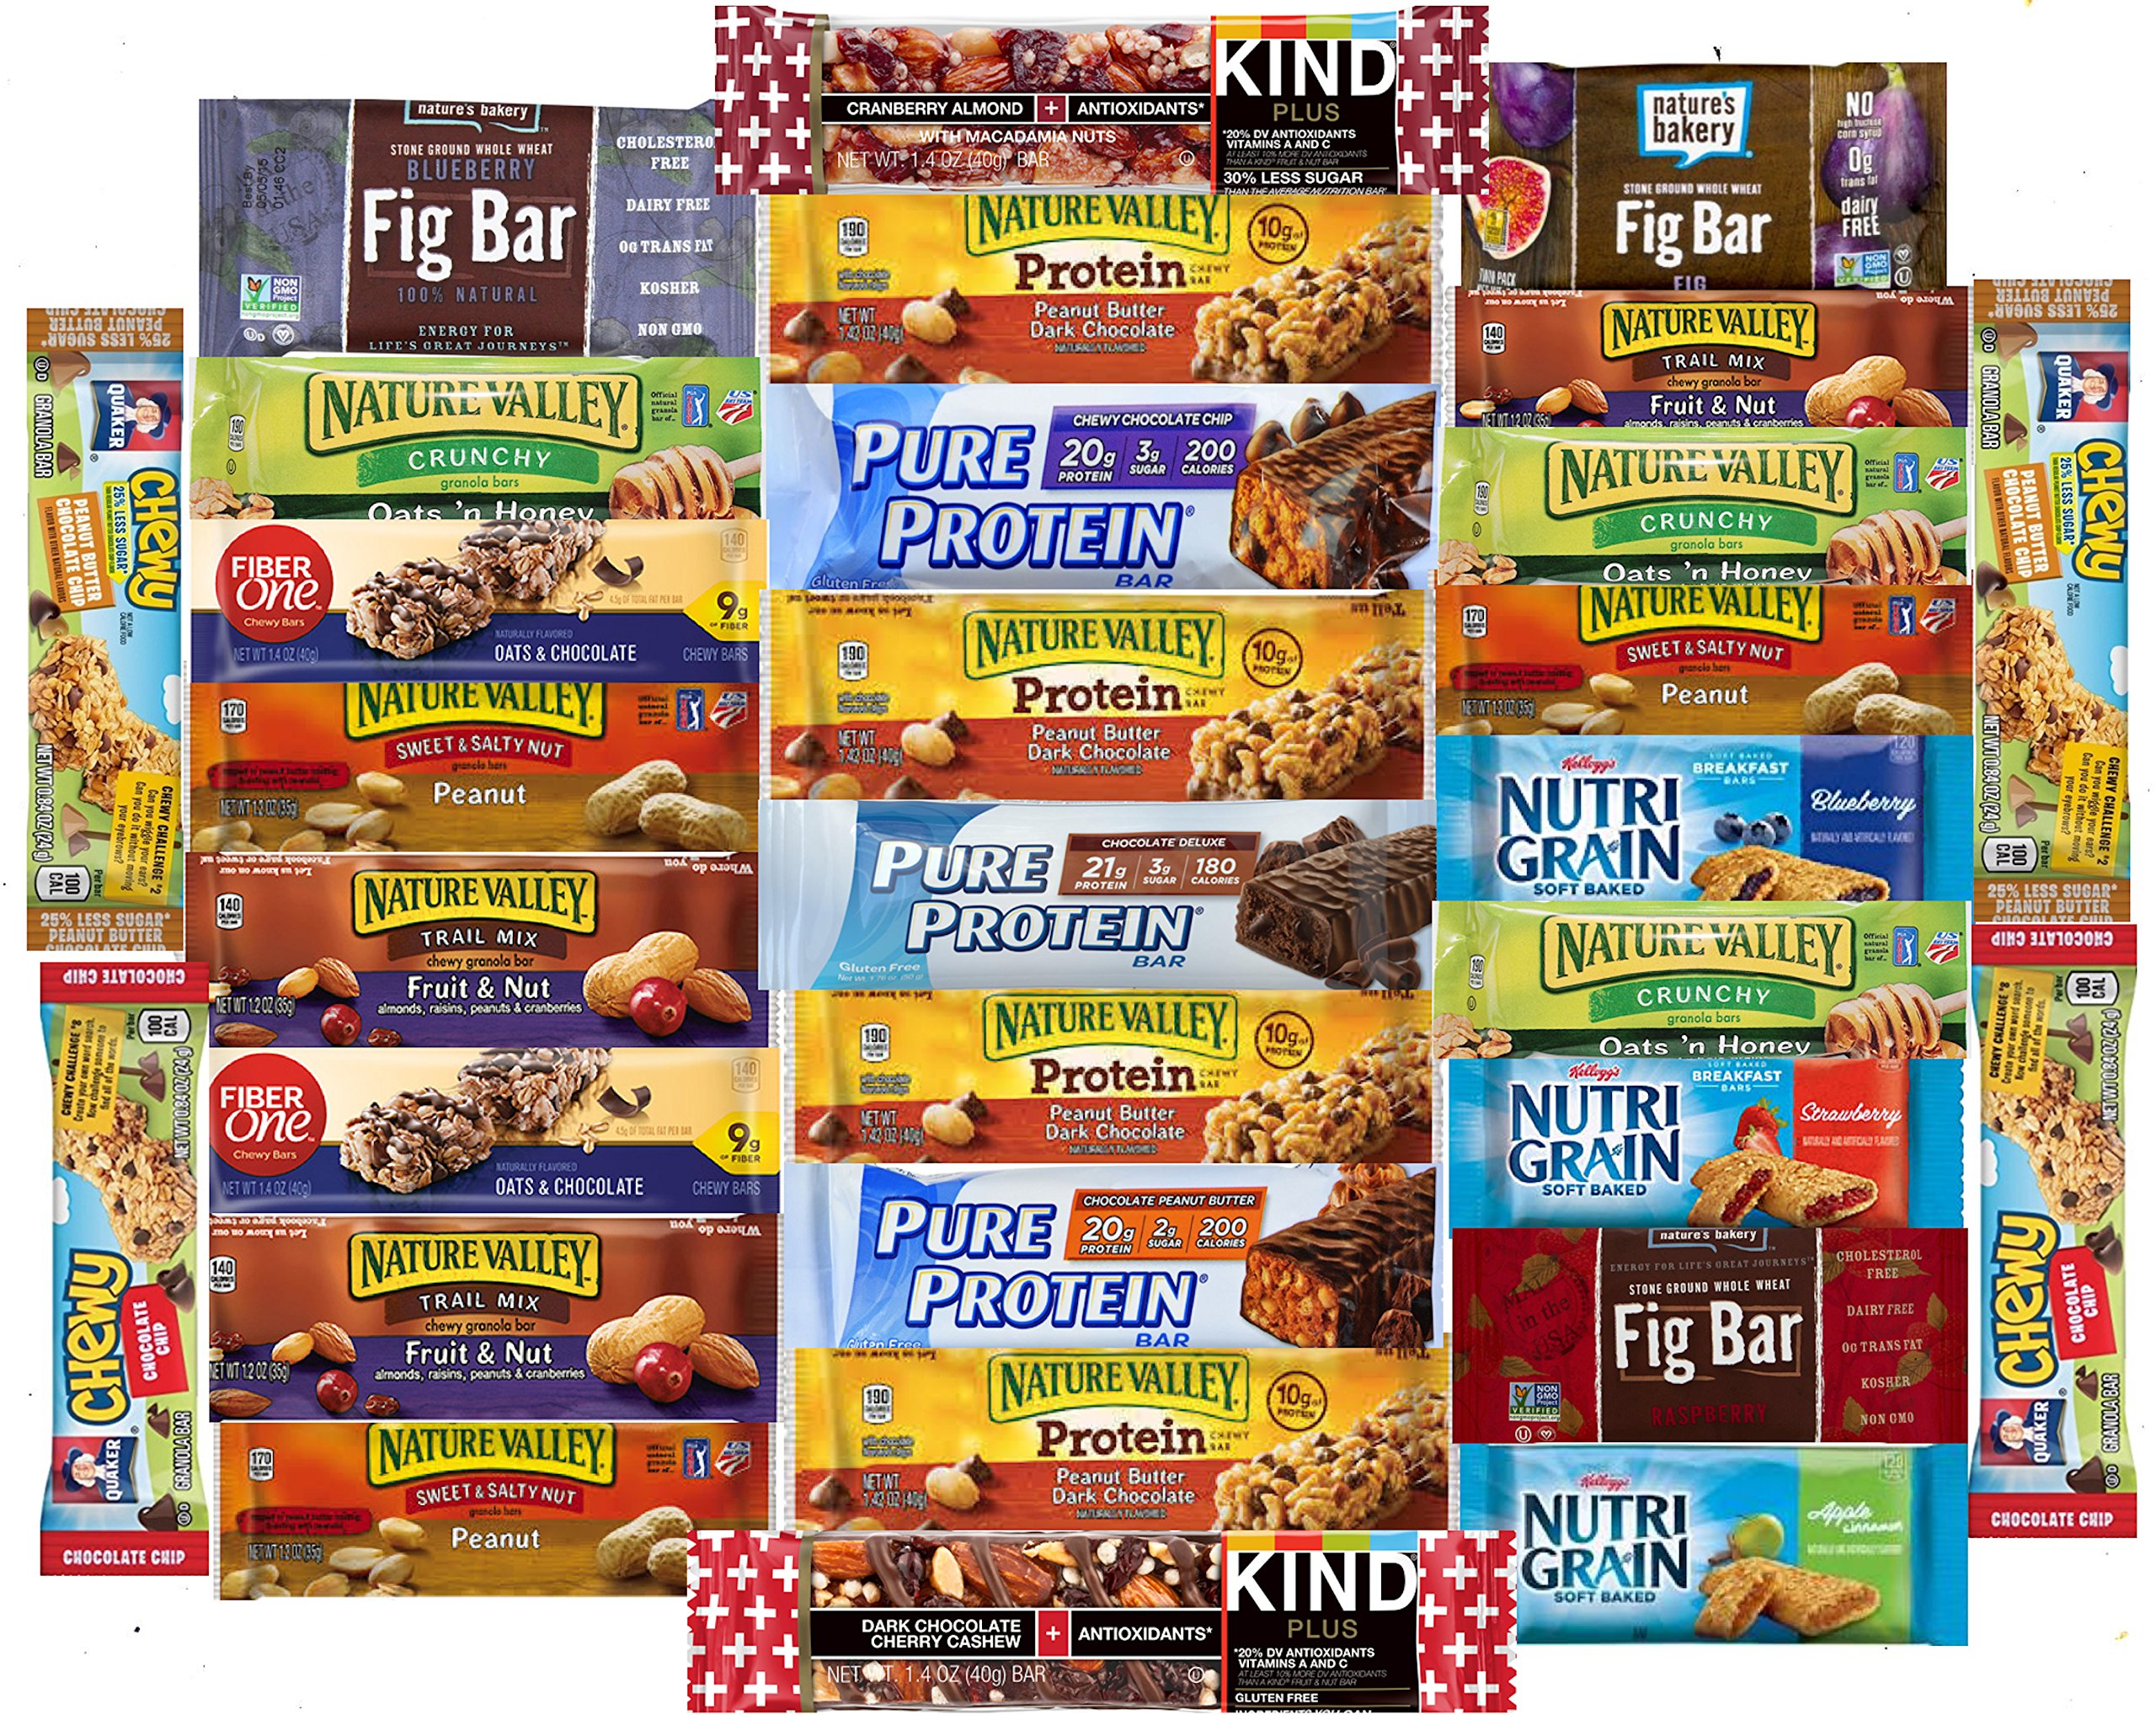 Fitness Box - Protein & Healthy Granola Bars Sampler Snack Box (30 Count) - Care Package - Gift Pack - Variety of Fitness, Energy Bars and KIND Bars. by LA Signature